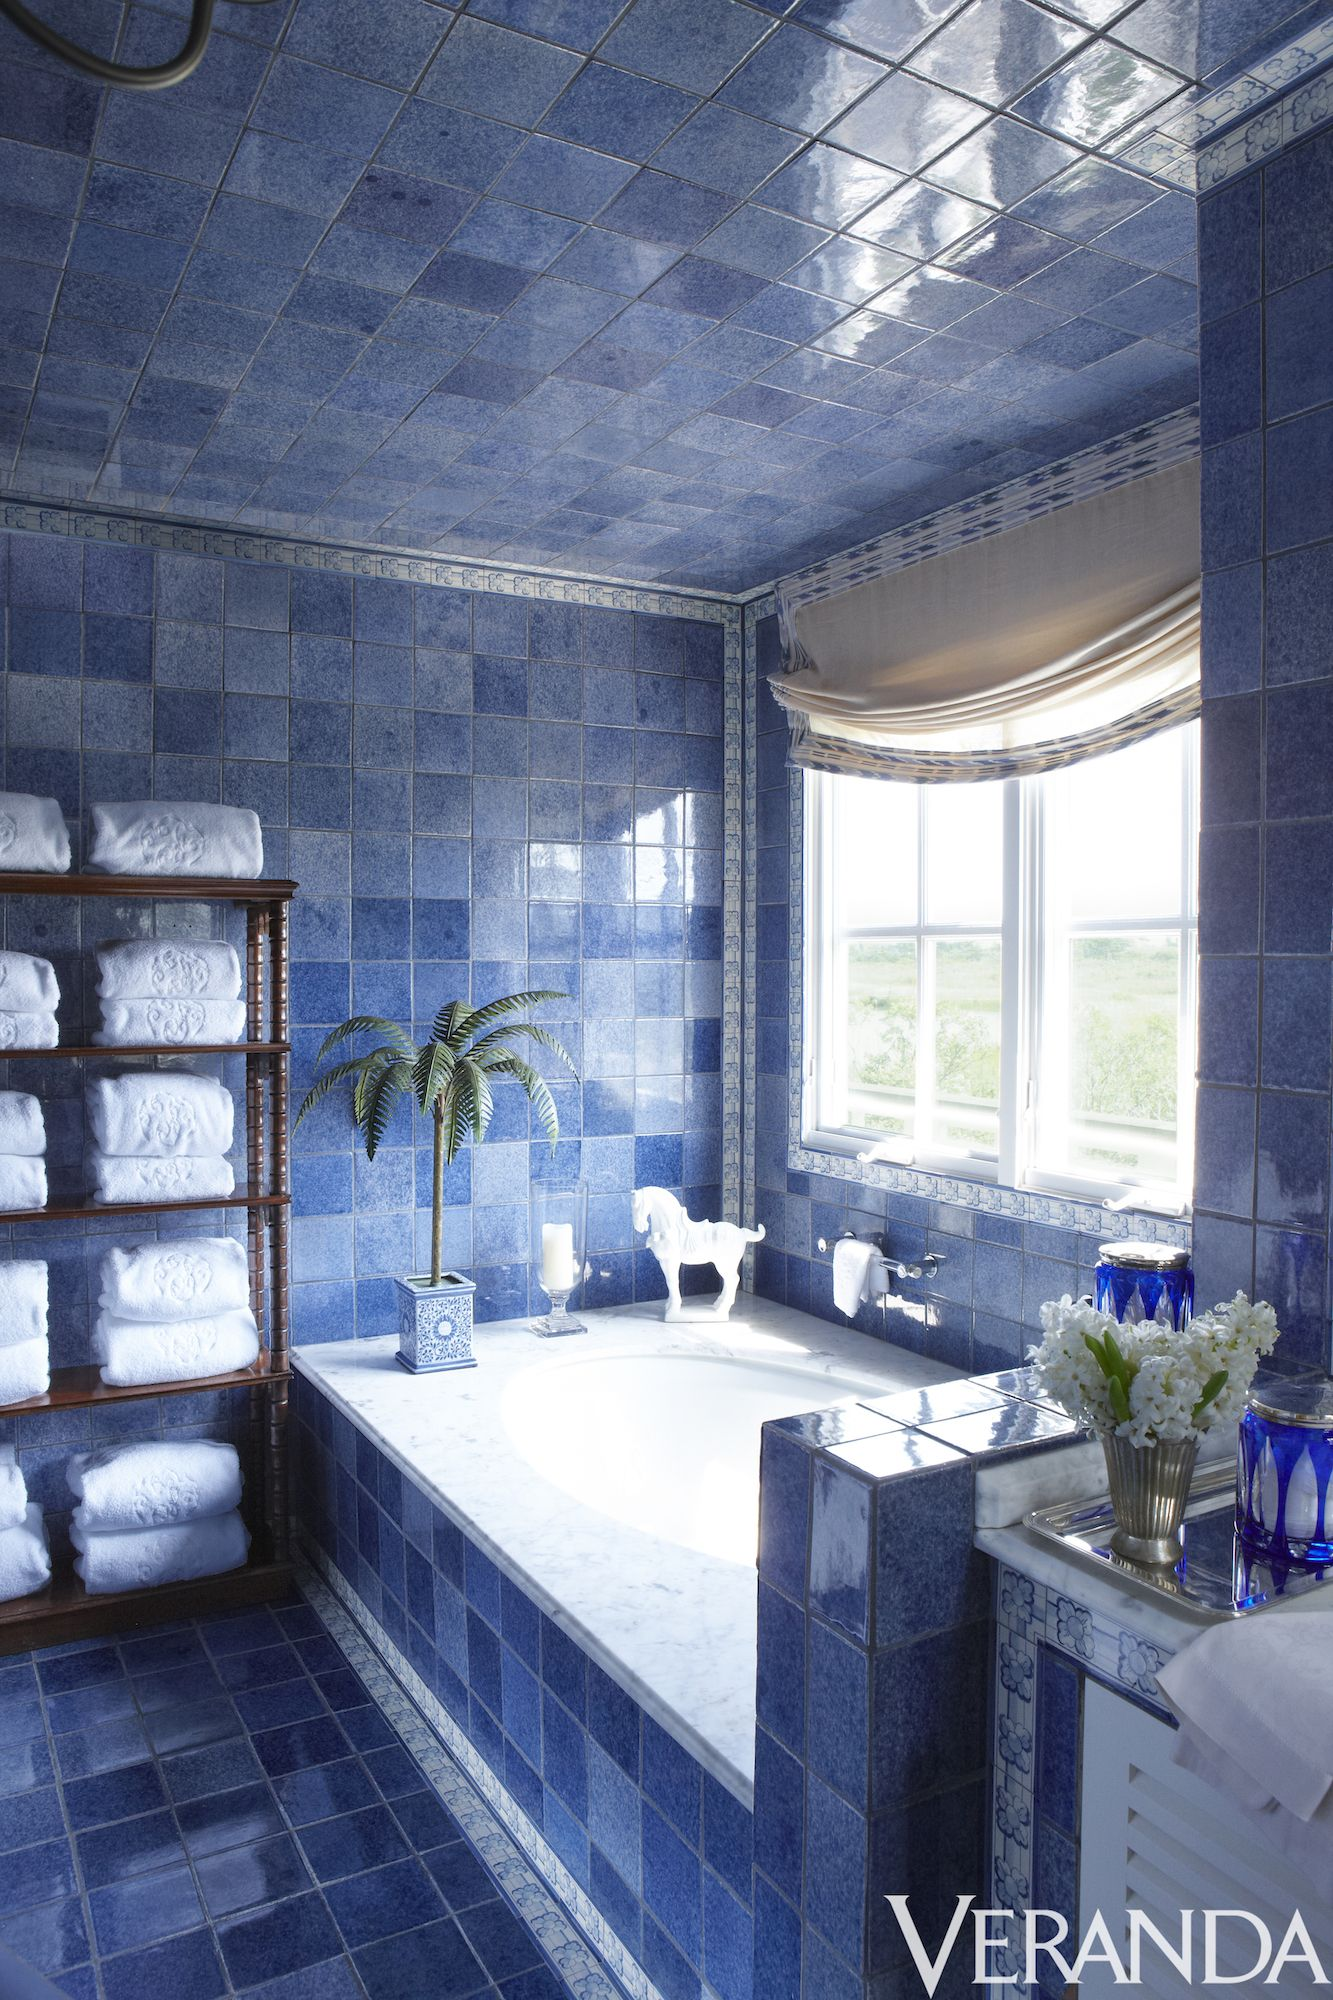 35+ Best Bathroom Design Ideas - Pictures of Beautiful Bathrooms